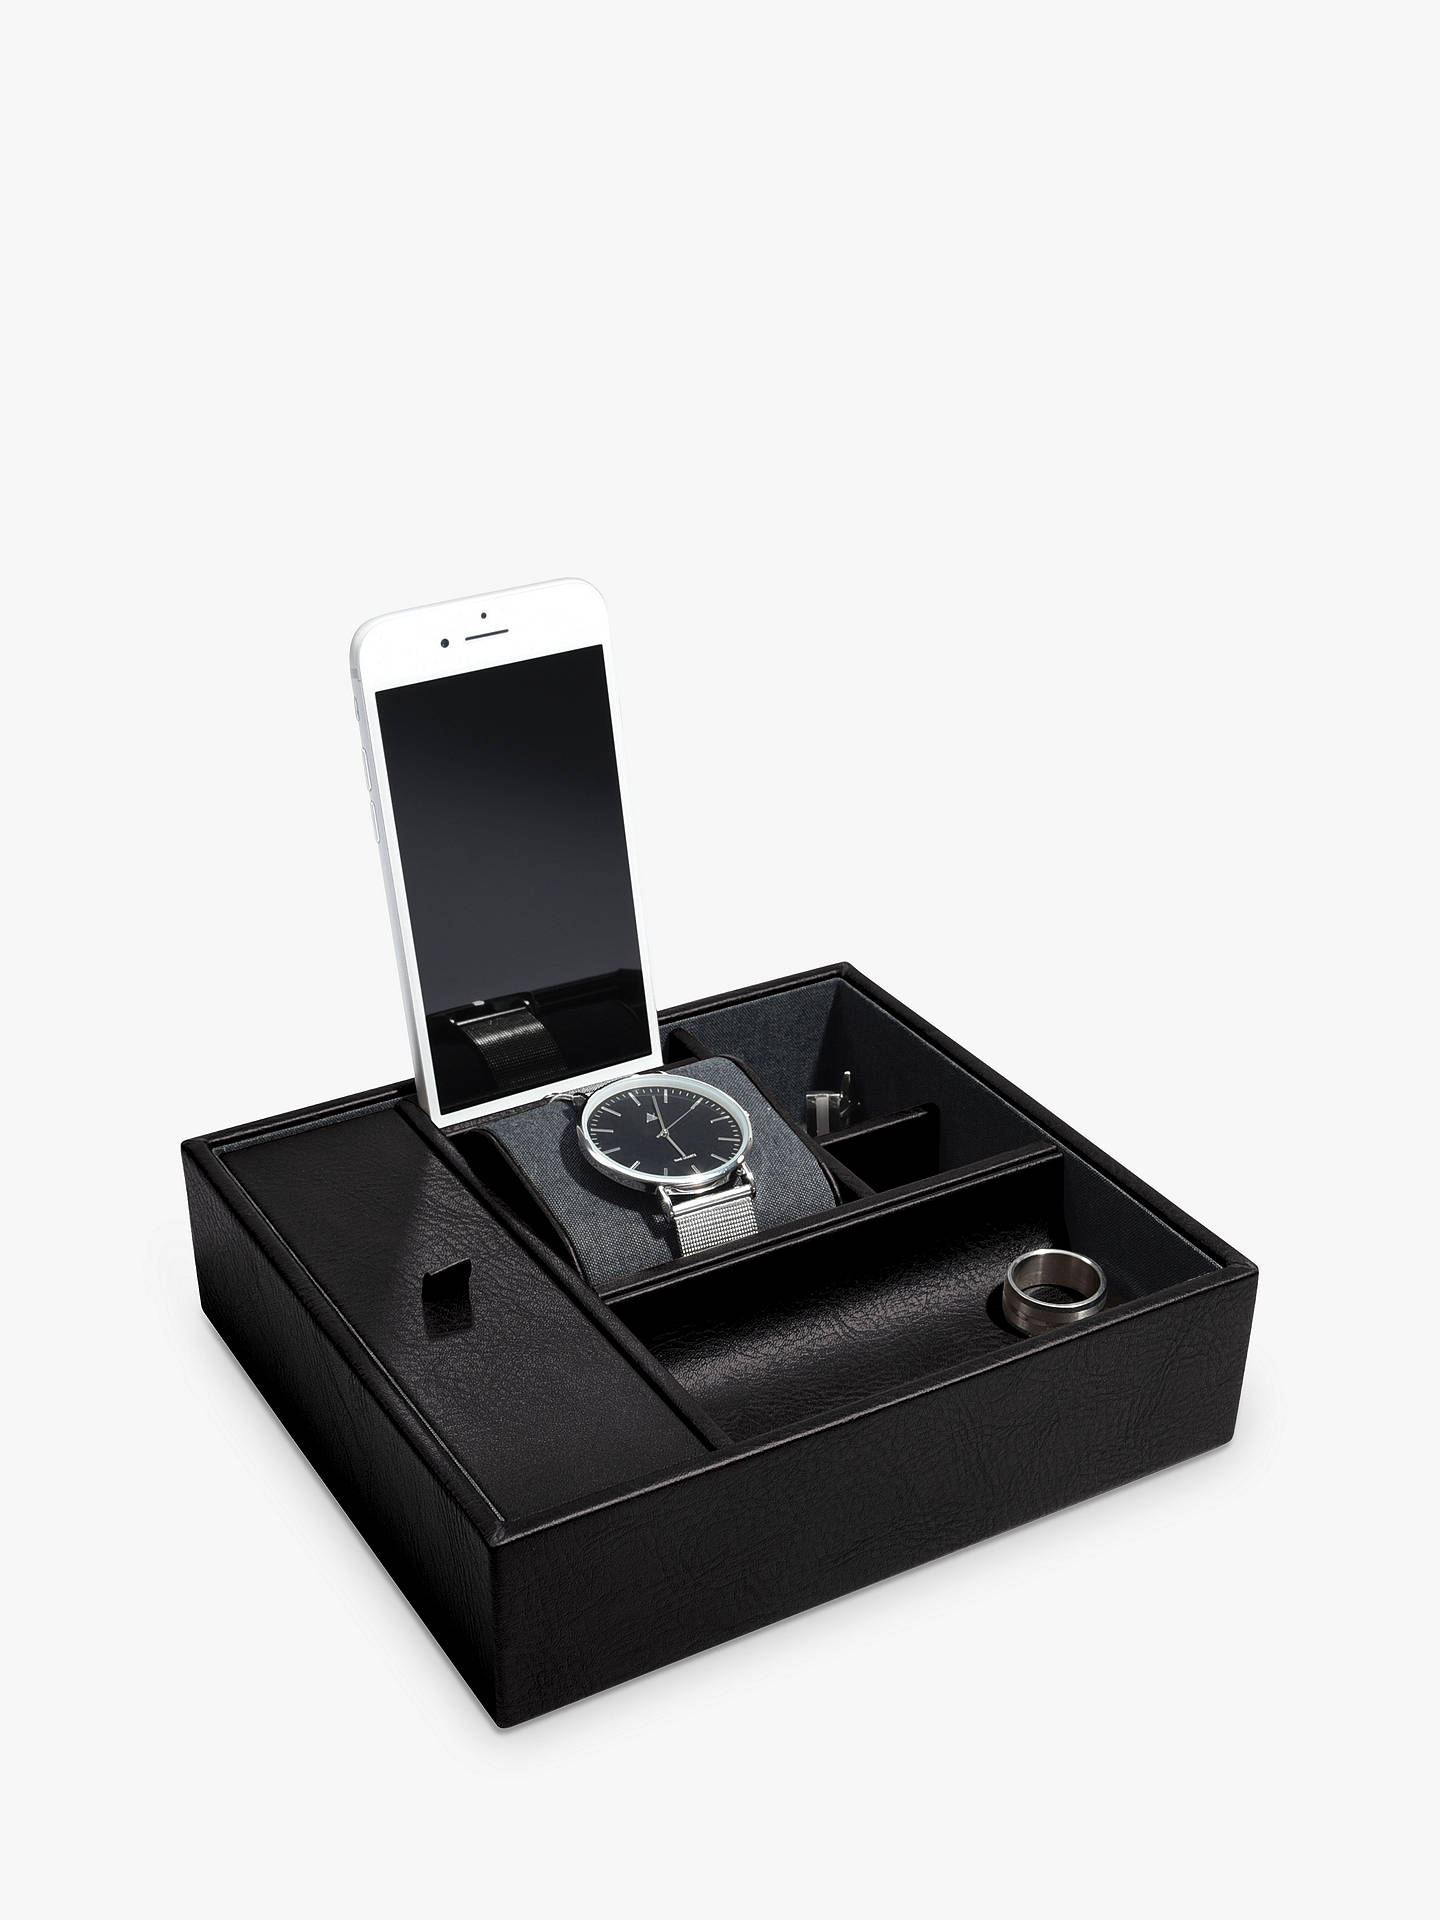 BuyStackers Large Technology and Watch Box, Black Online at johnlewis.com